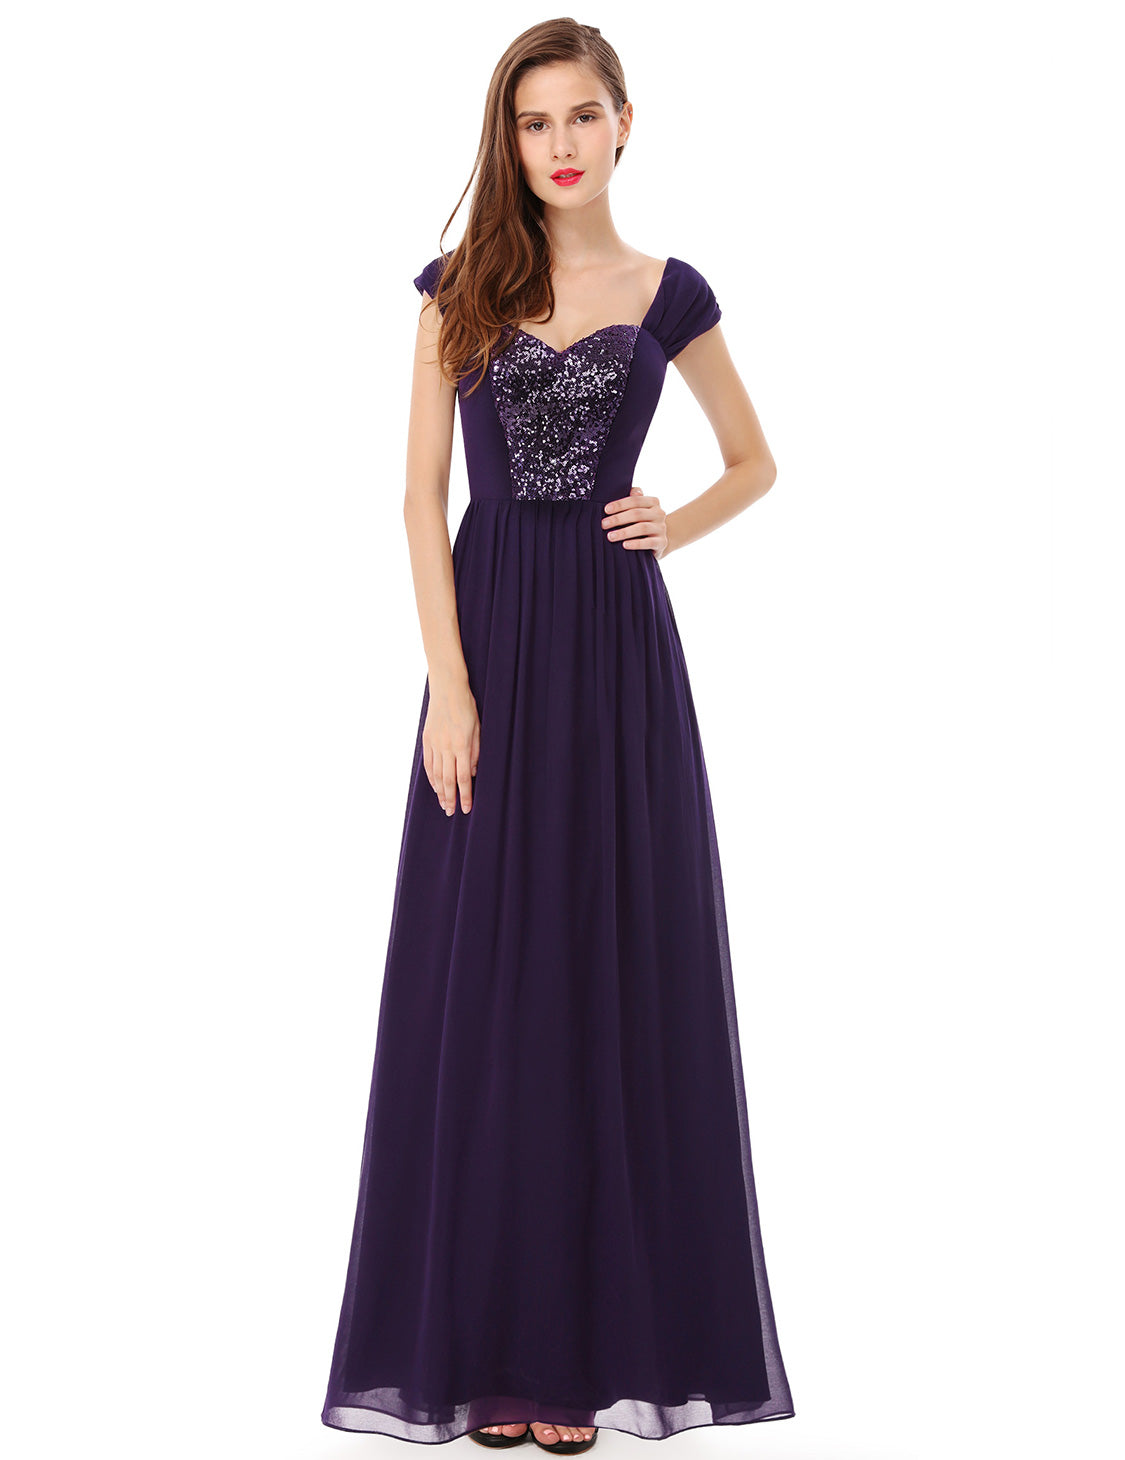 Obeige Elegant Purple Long Evening Dress